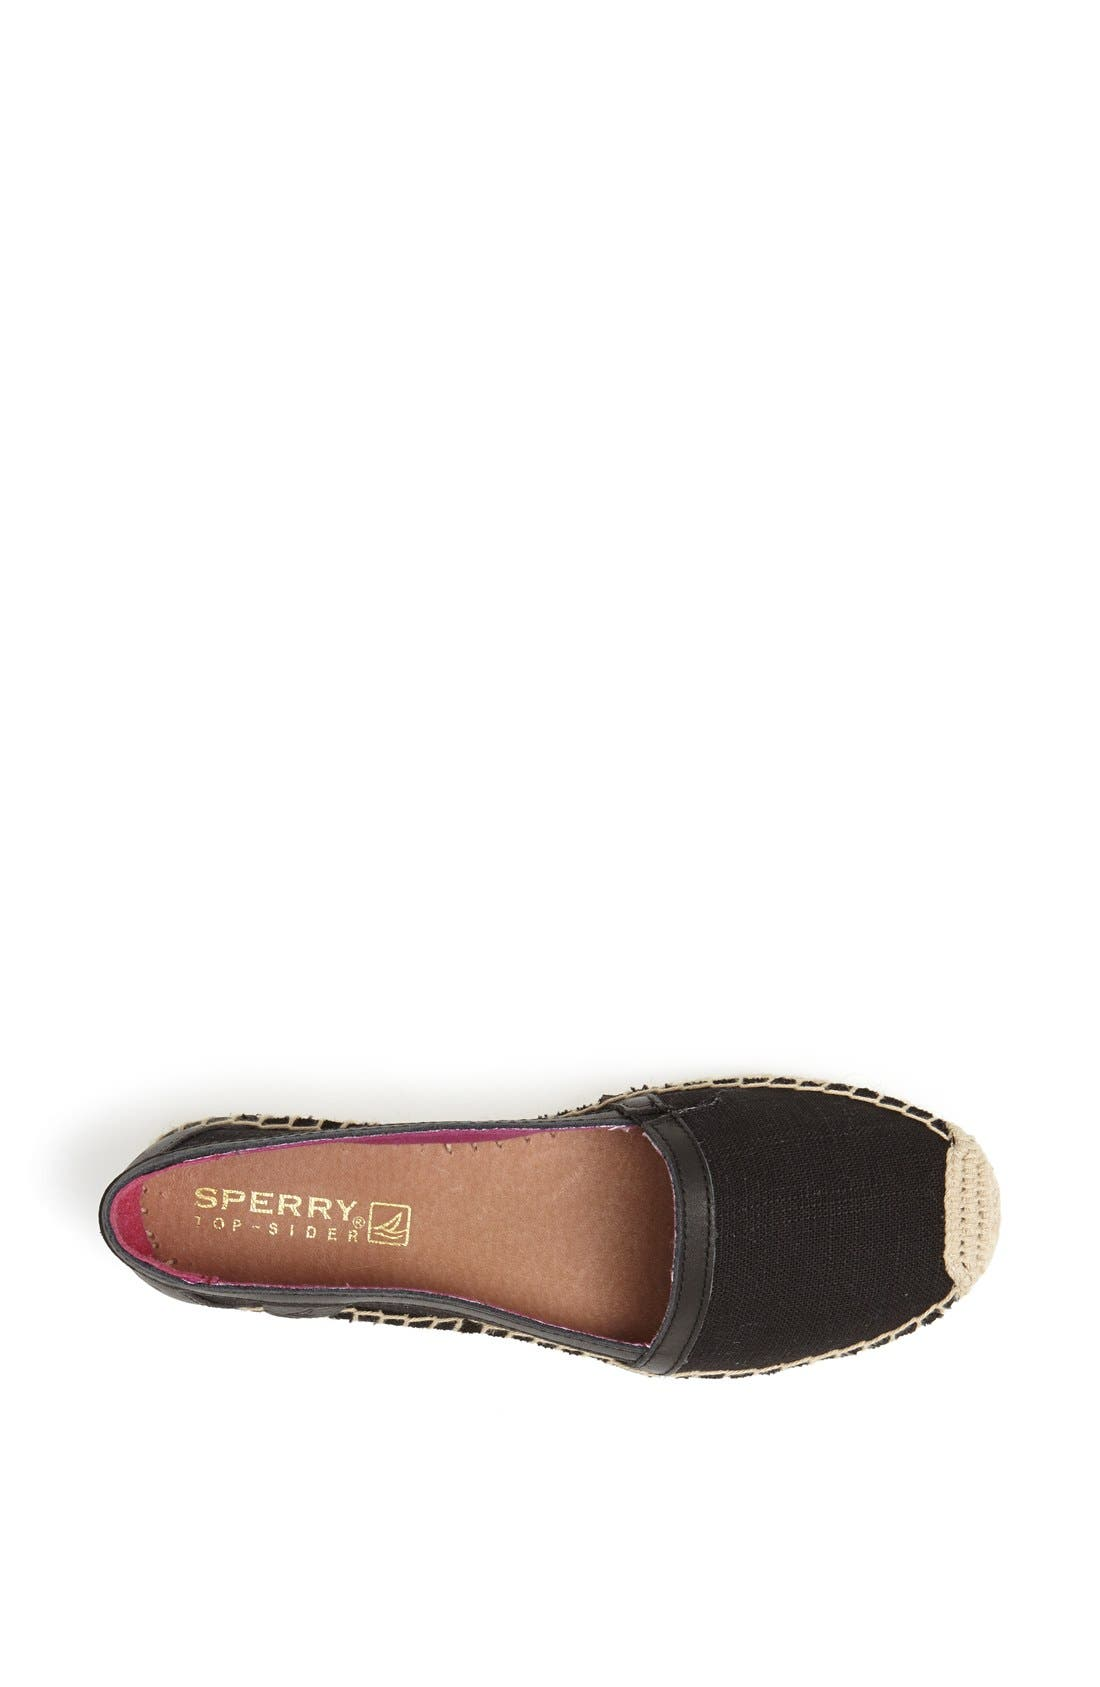 SPERRY, DANICA FLAT, Alternate thumbnail 3, color, 001